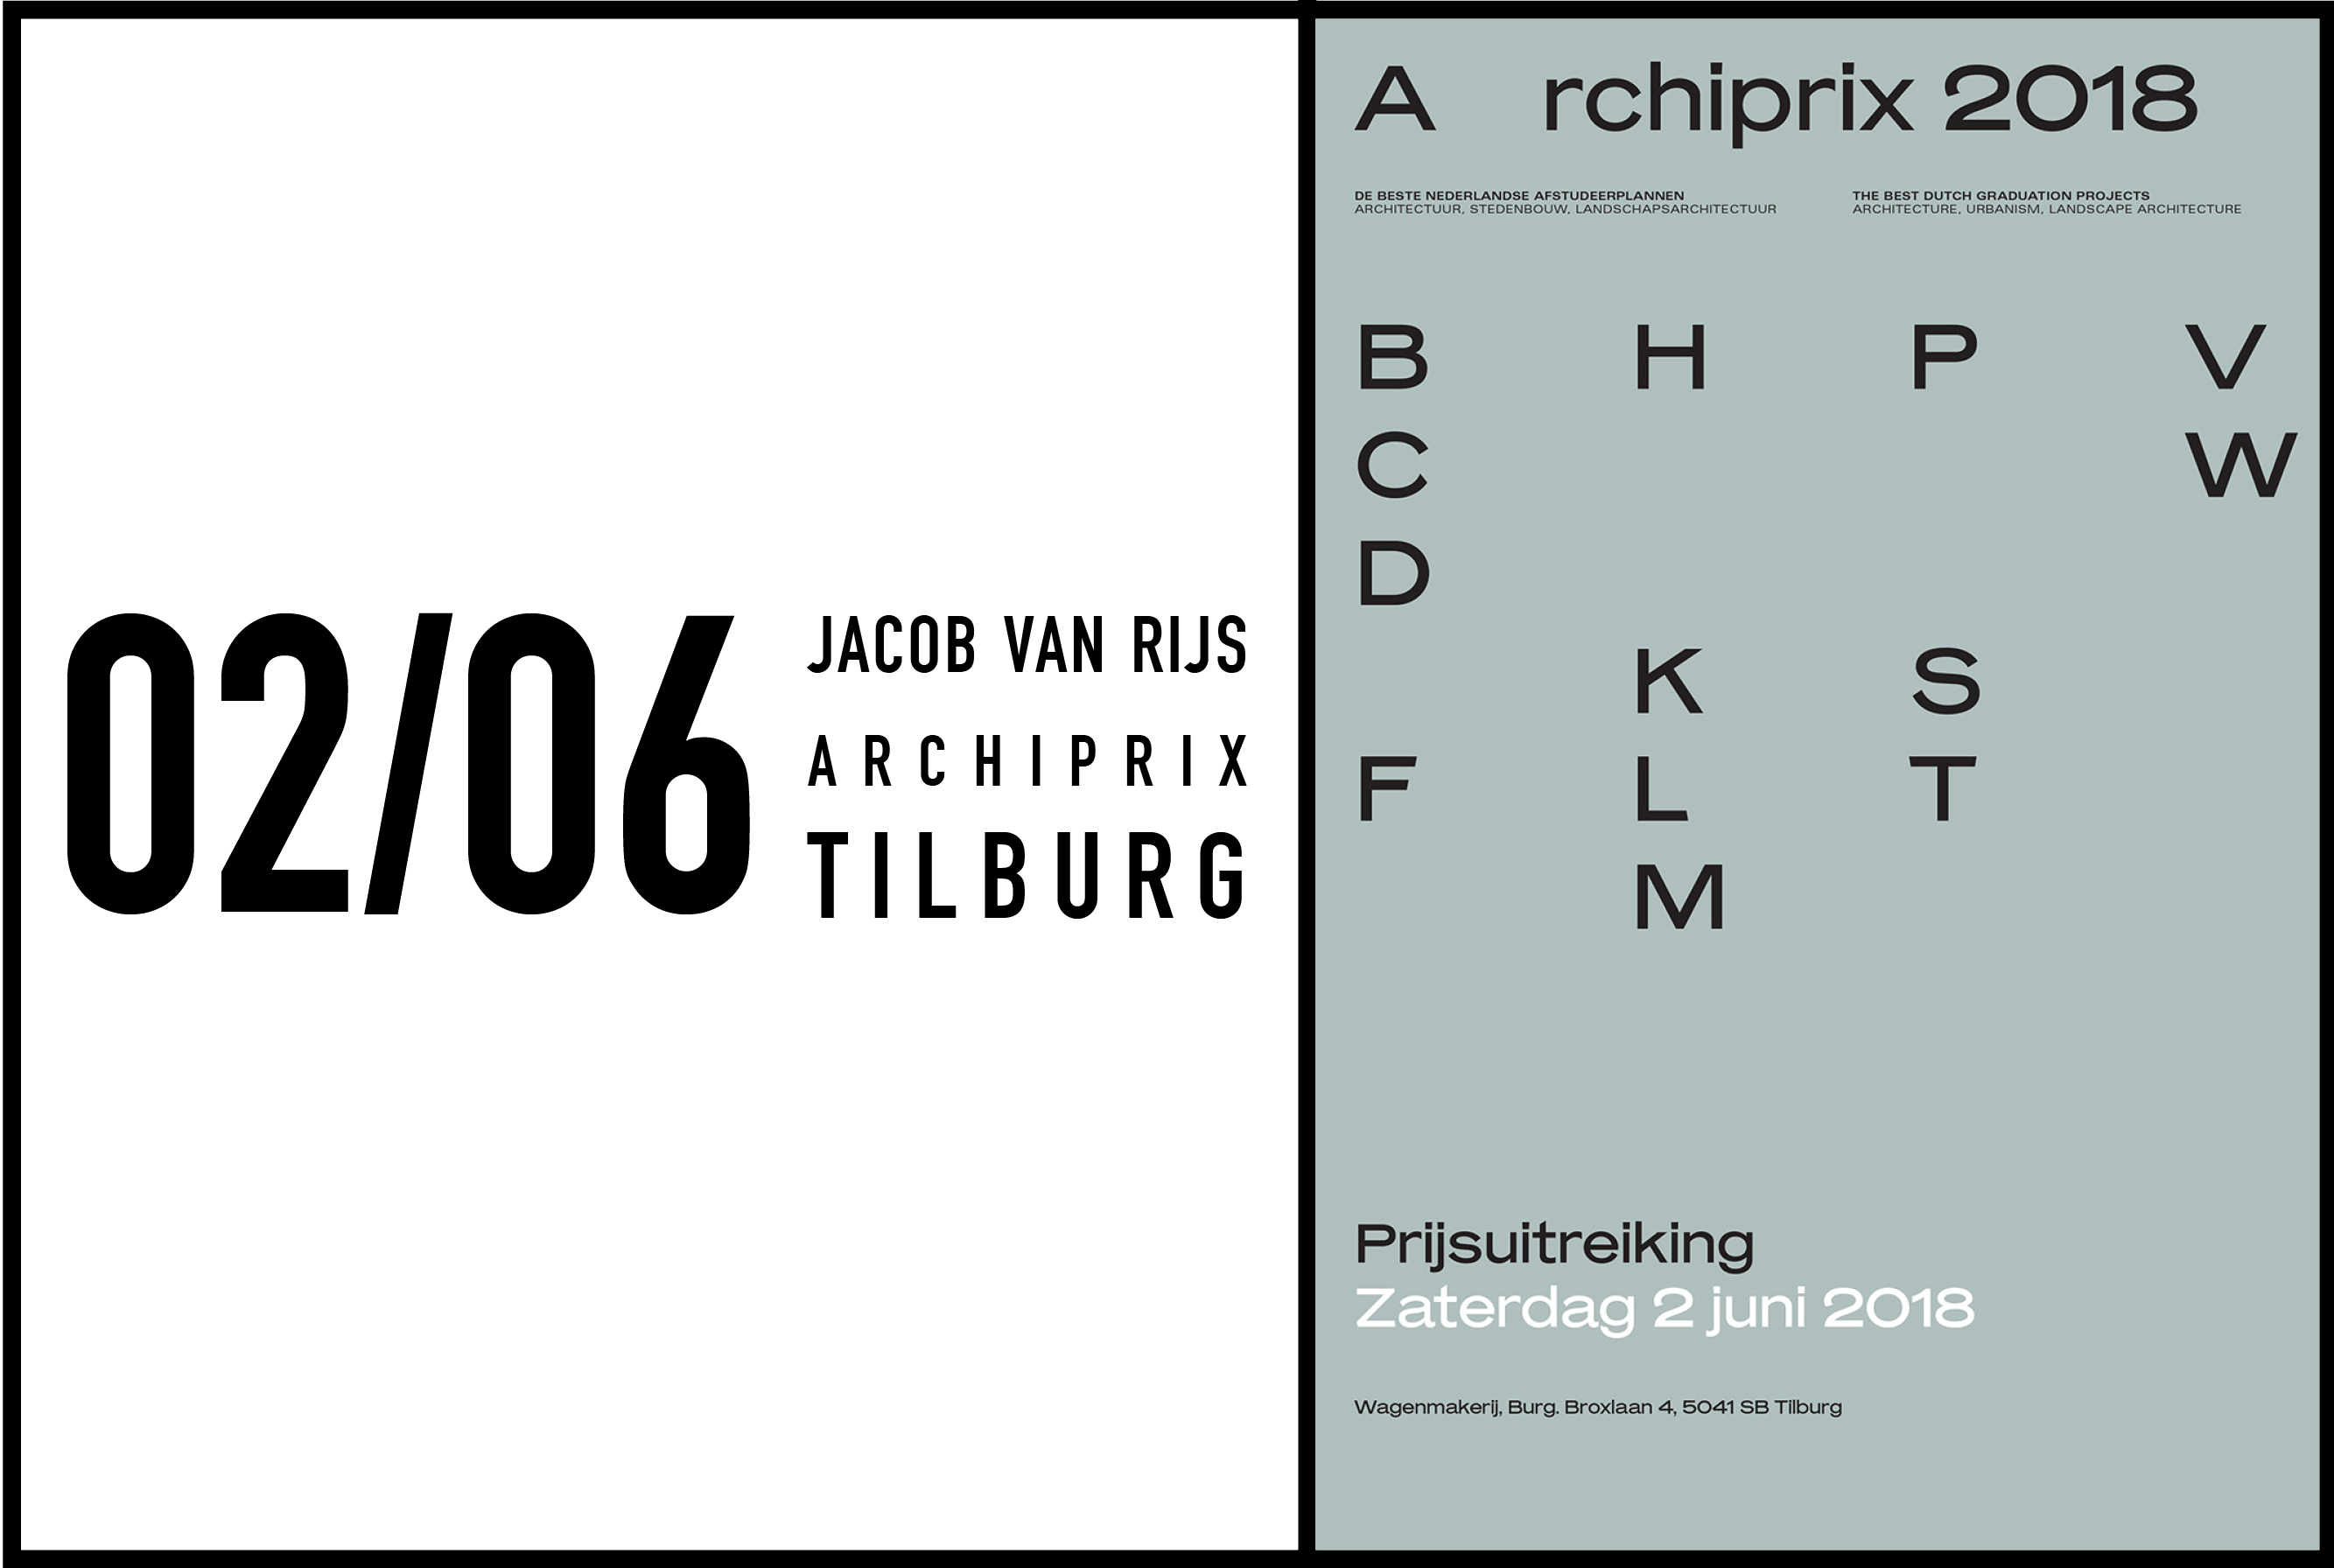 Jacob Van Rijs to give welcome address at Archiprix Netherlands Awards, 2 June 2018